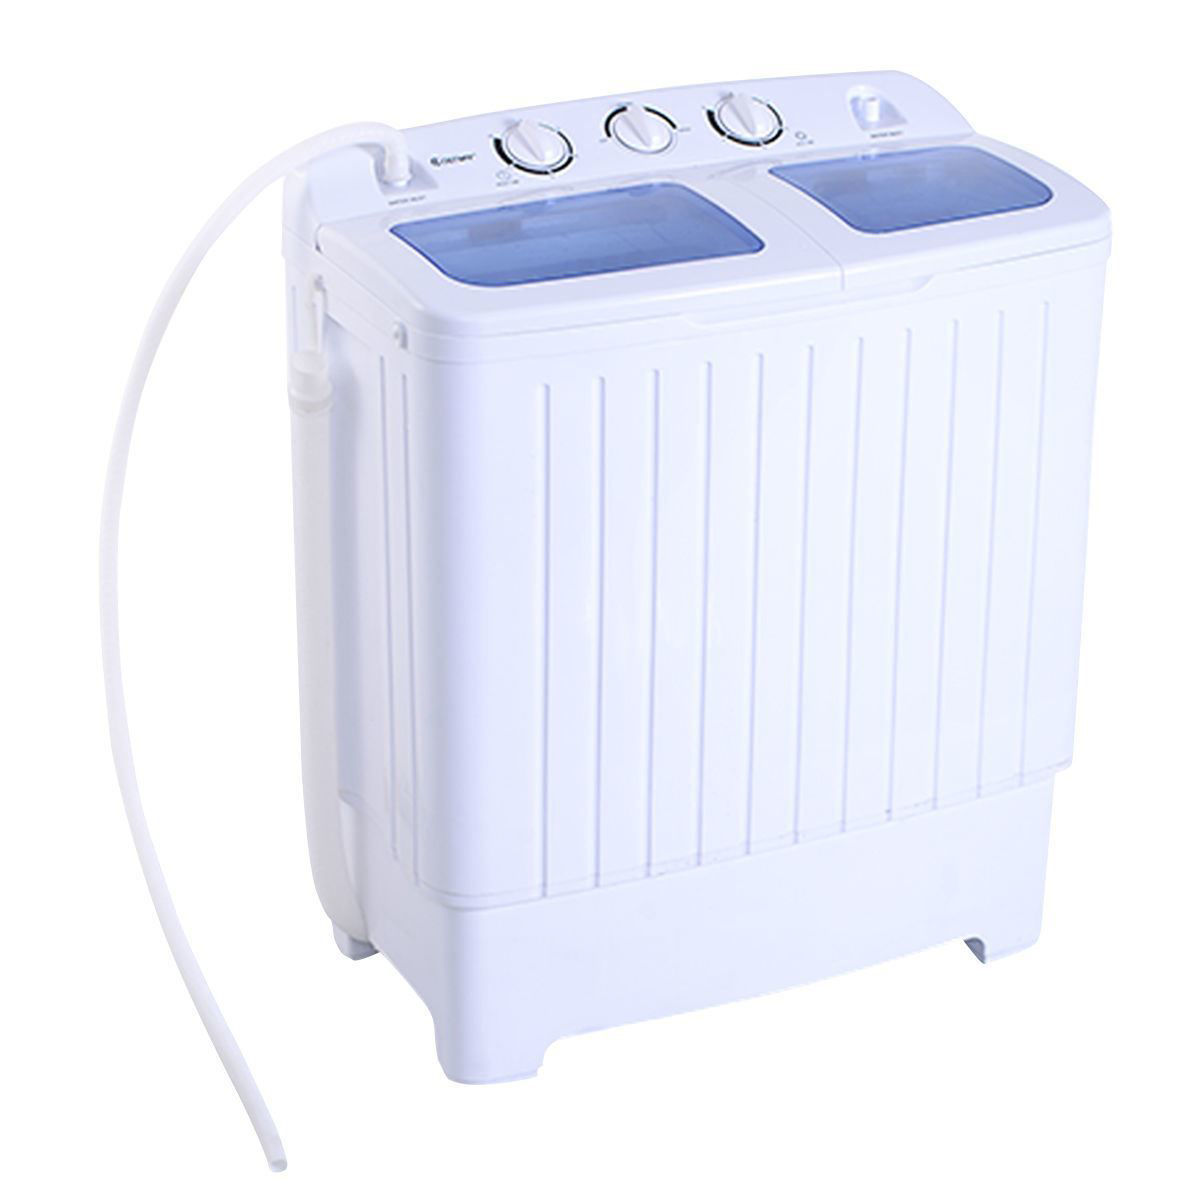 Picture of Portable Mini Compact Washer Machine Washer Spin Dryer Twin Tub 11lb